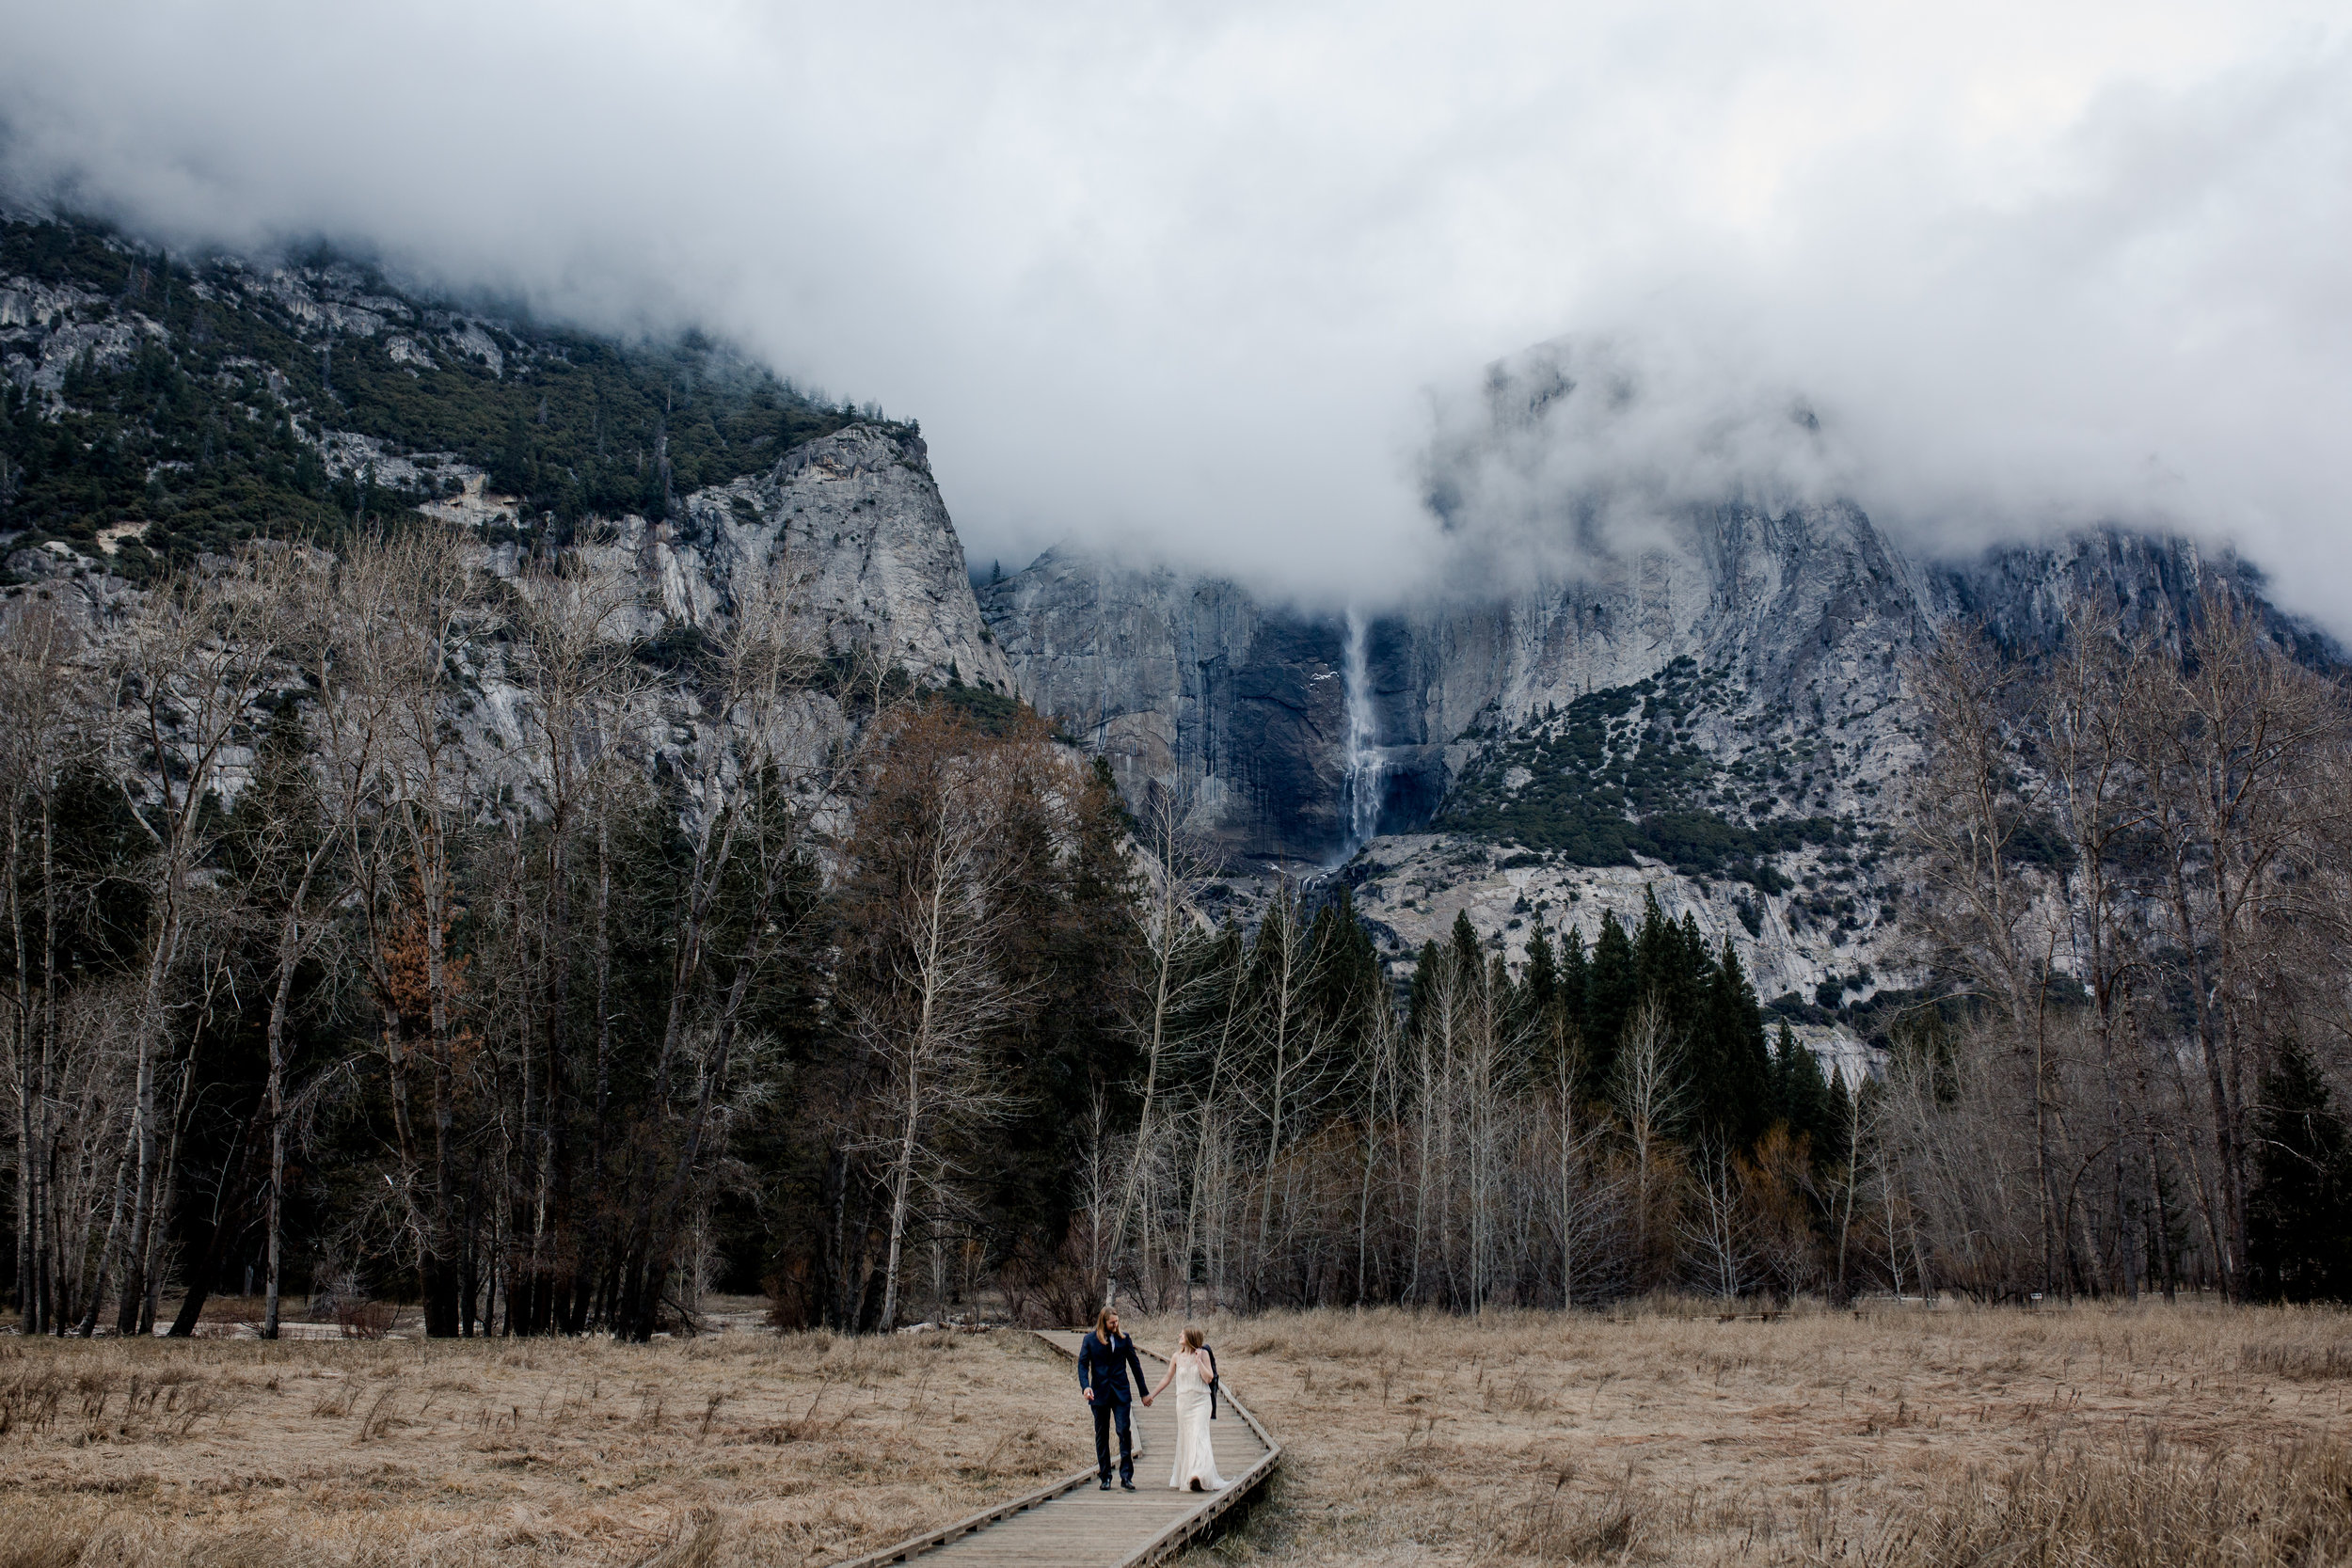 nicole-daacke-photography-yousemite-national-park-elopement-photographer-winter-cloud-moody-elope-inspiration-yosemite-valley-tunnel-view-winter-cloud-fog-weather-wedding-photos-92.jpg